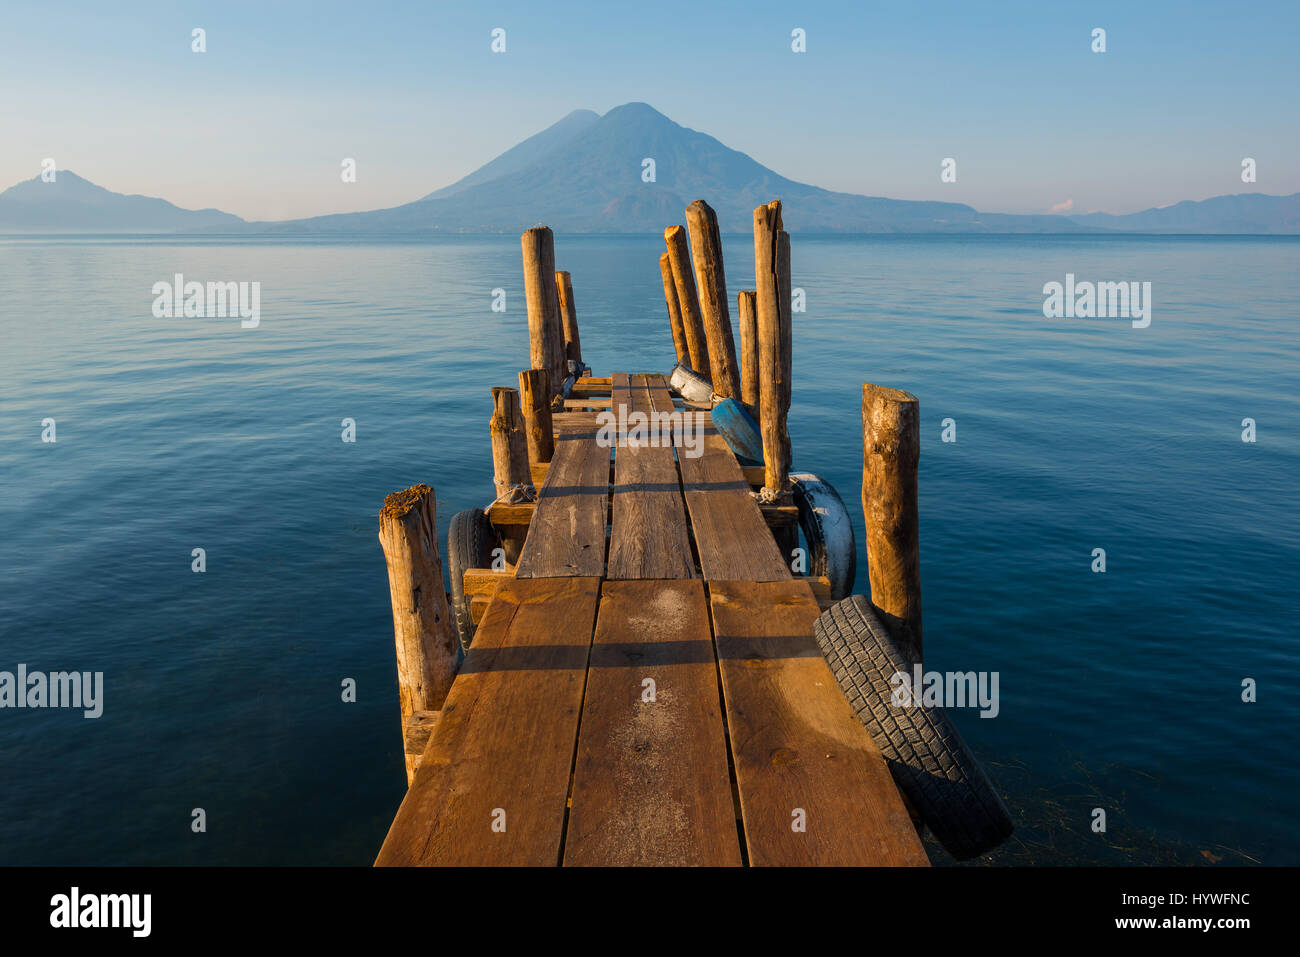 Sunset by the Atitlan Lake with an embarkation pier used by fishermen close to Panajachel, Guatemala. - Stock Image